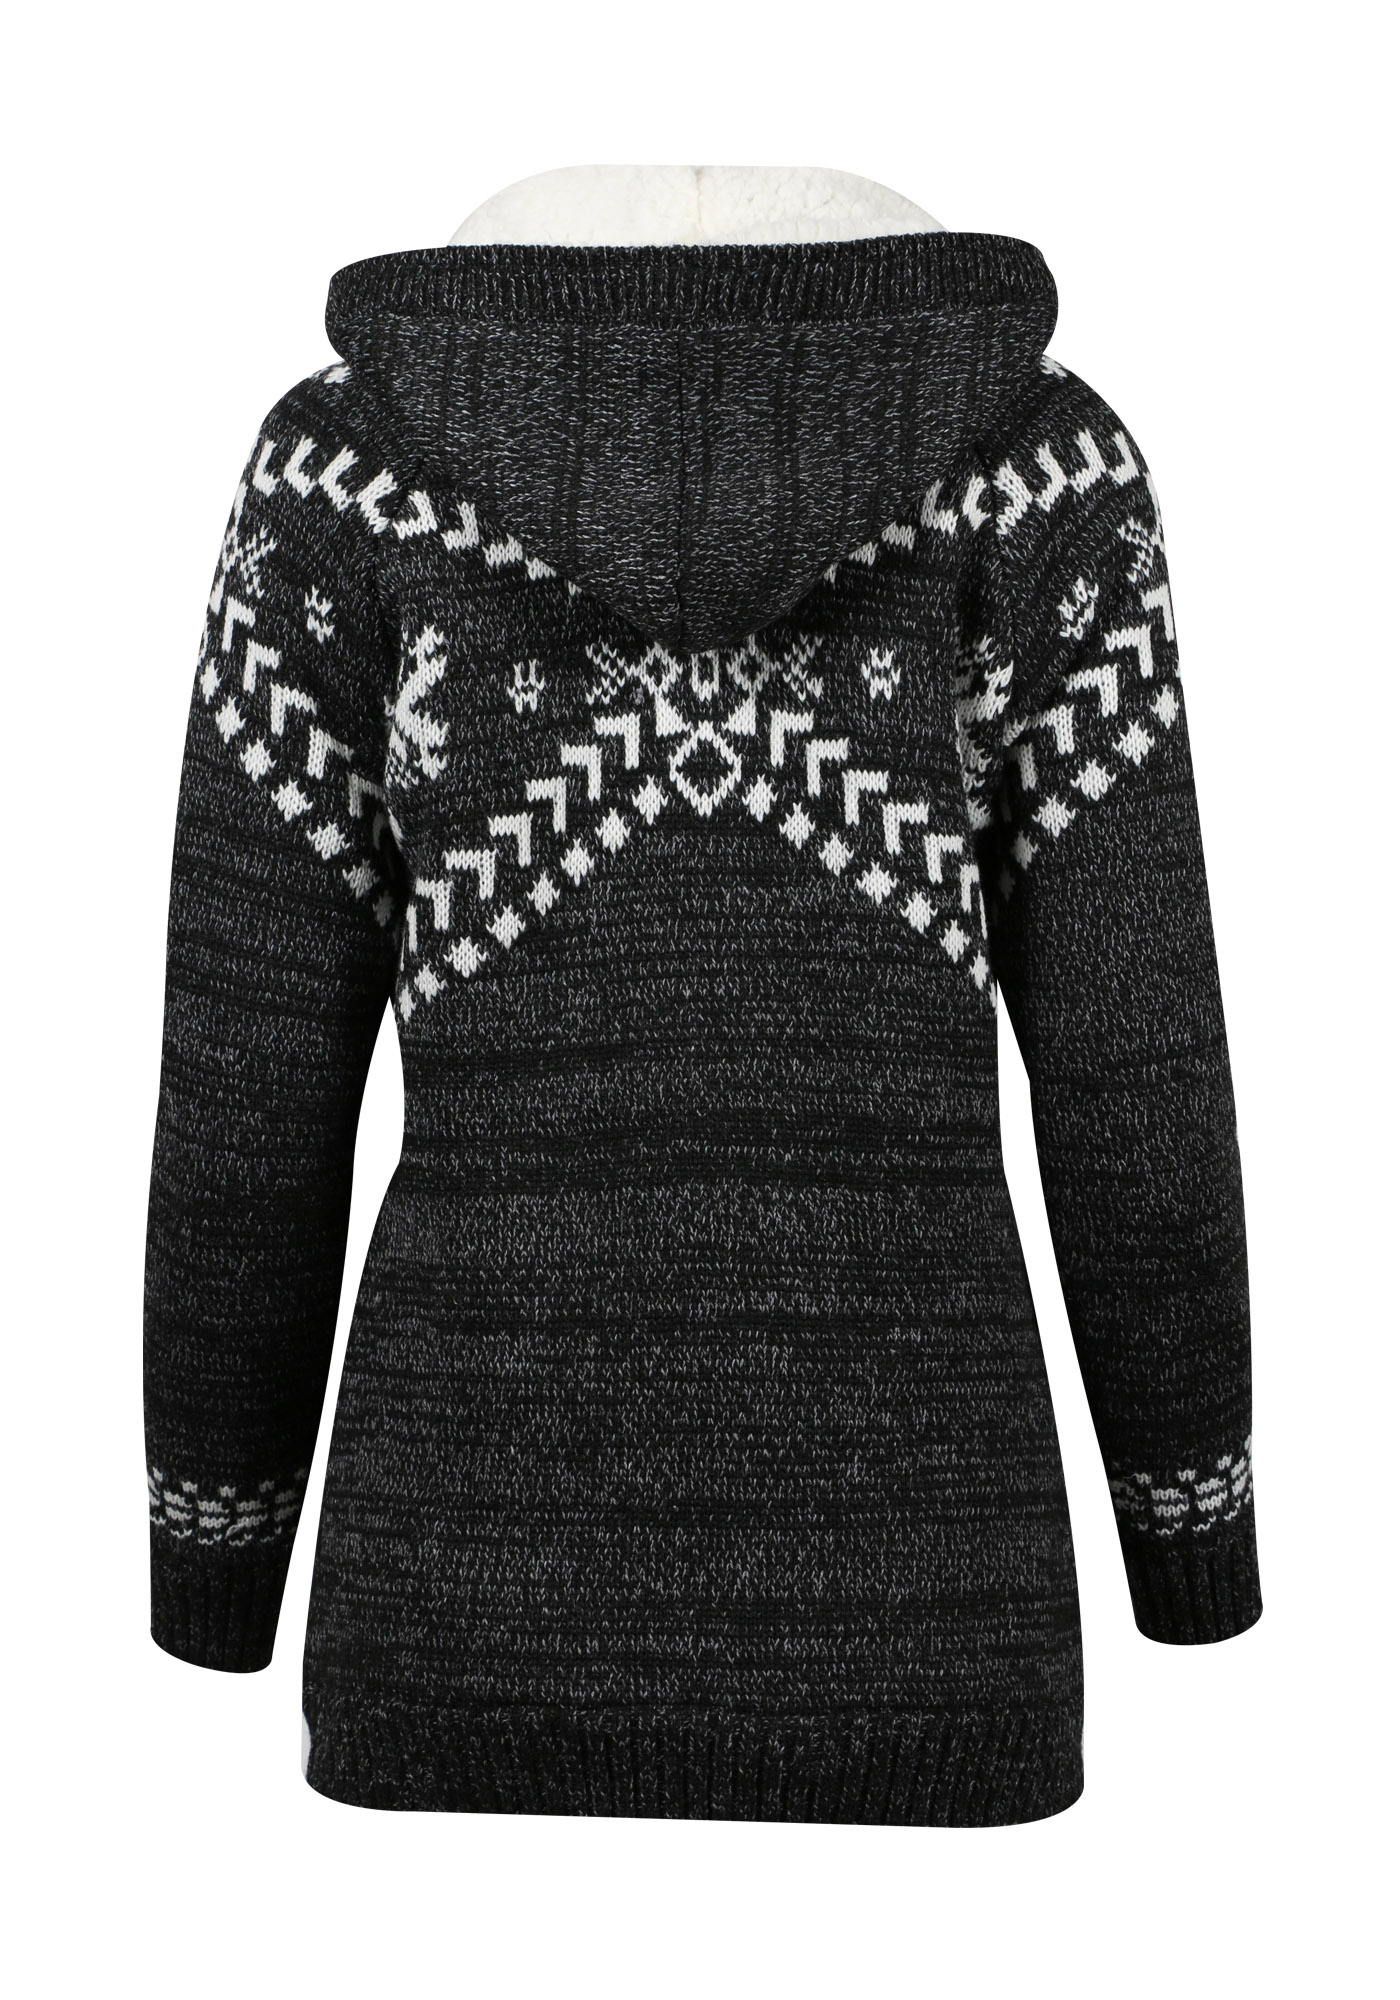 40cc24d54 ... Womens Sherpa Lined Nordic Cardigan, GREY/IVORY, hi-res